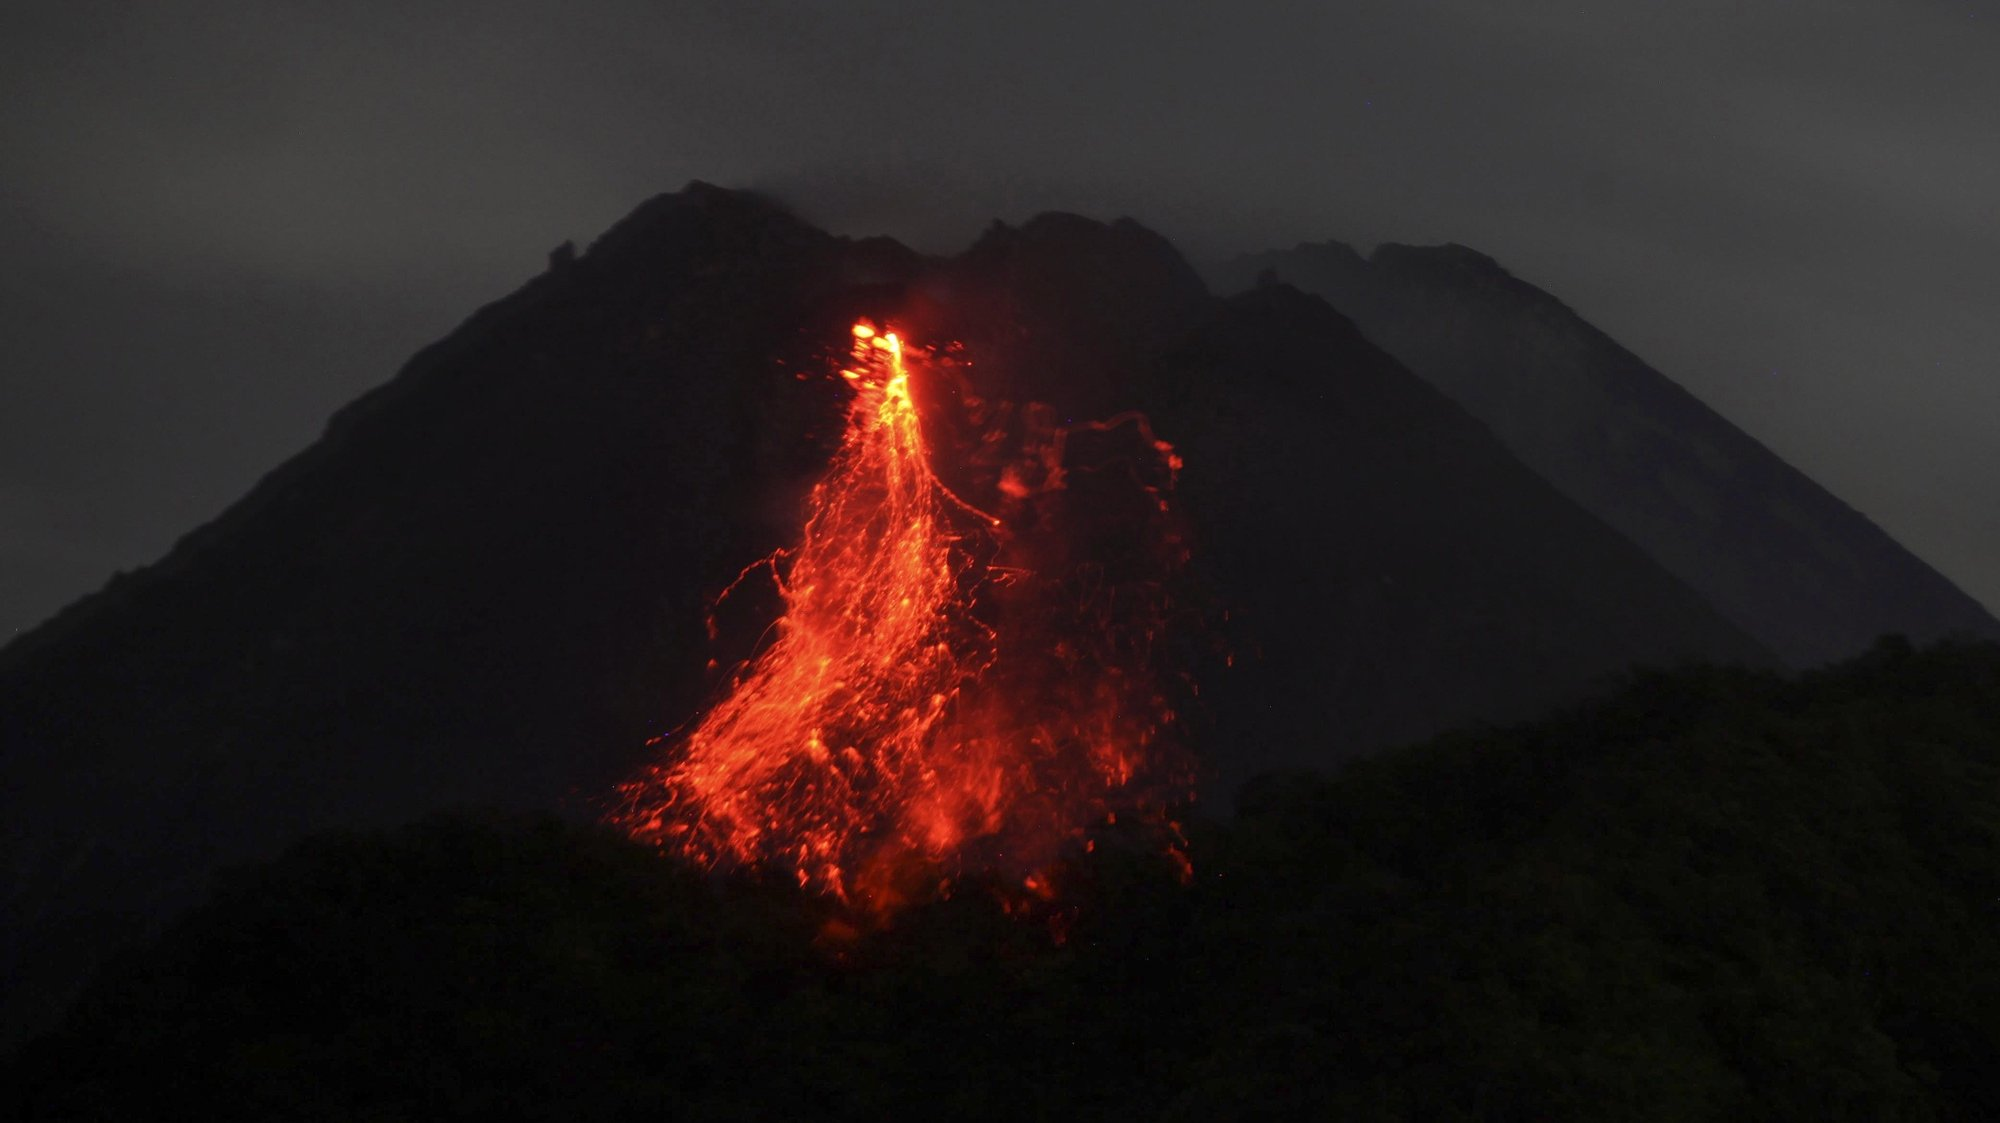 epaselect epa08945381 Mount Merapi volcano spews lava during an eruption, as seen from Sleman, Yogyakarta, Indonesia, 17 January 2021 (issued 18 January 2021). Mount Merapi is one of the most active volcanoes in the country. At least 300 people were killed when it erupted in 2010.  EPA/BOY TRIHARJANTO